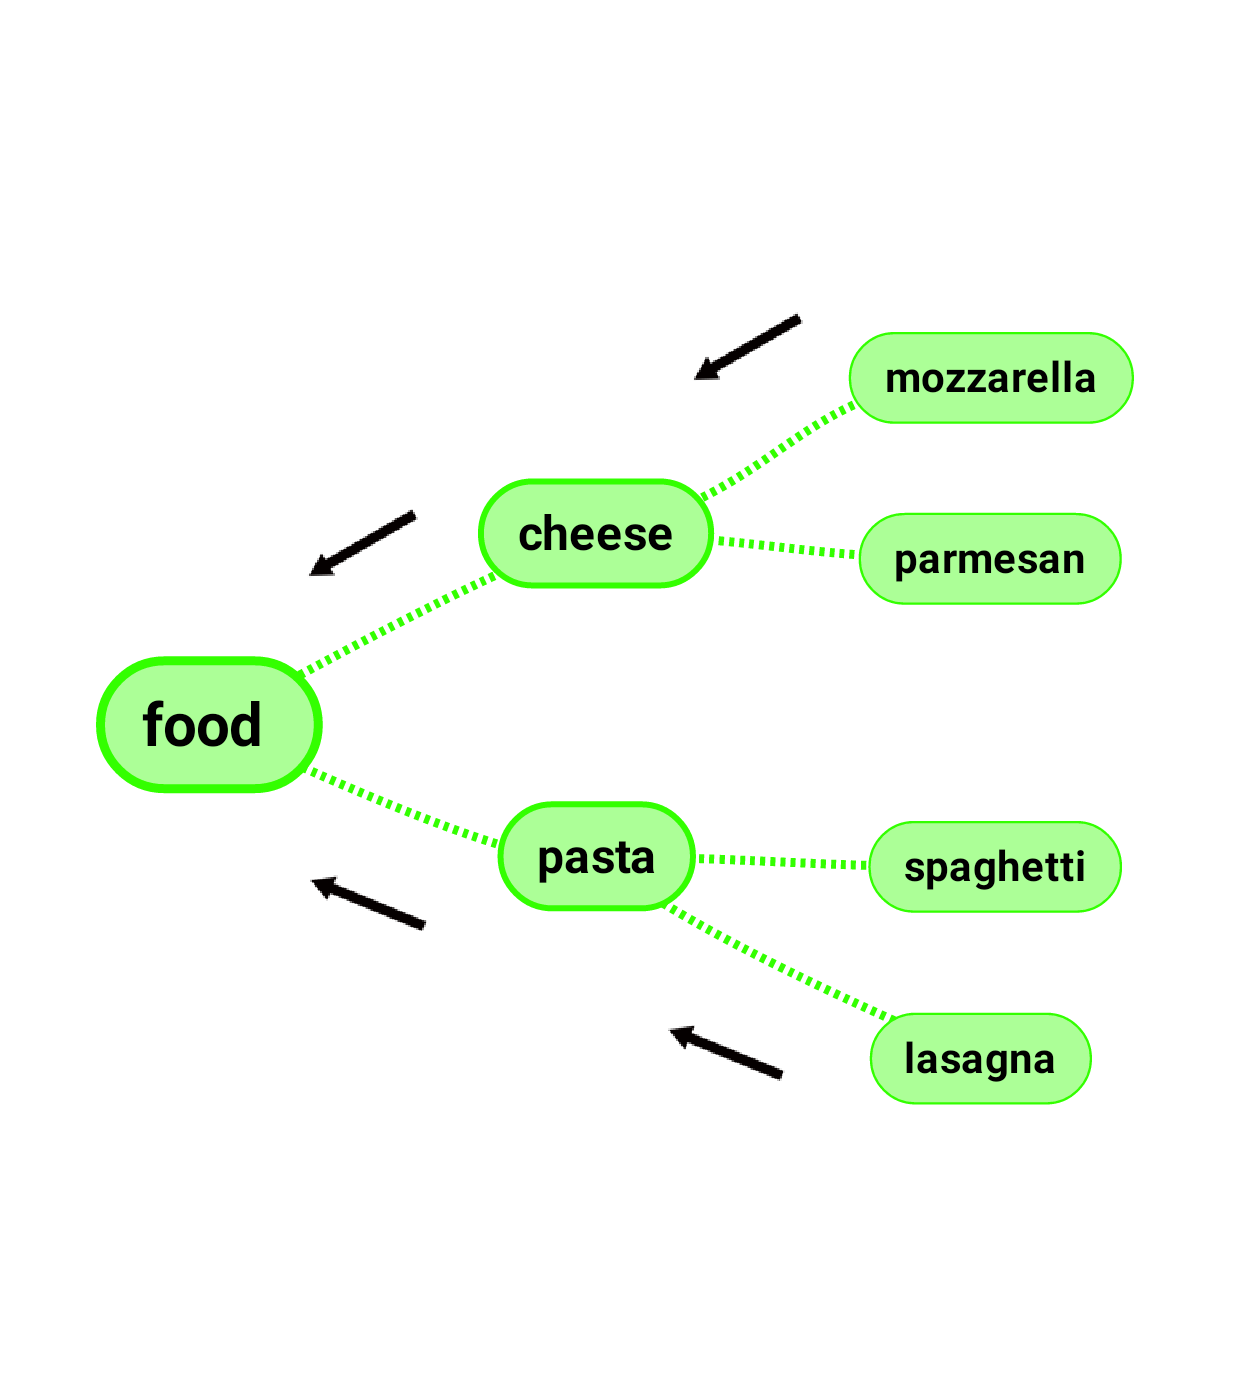 Abstract association (food) is made more and more concrete (cheese)